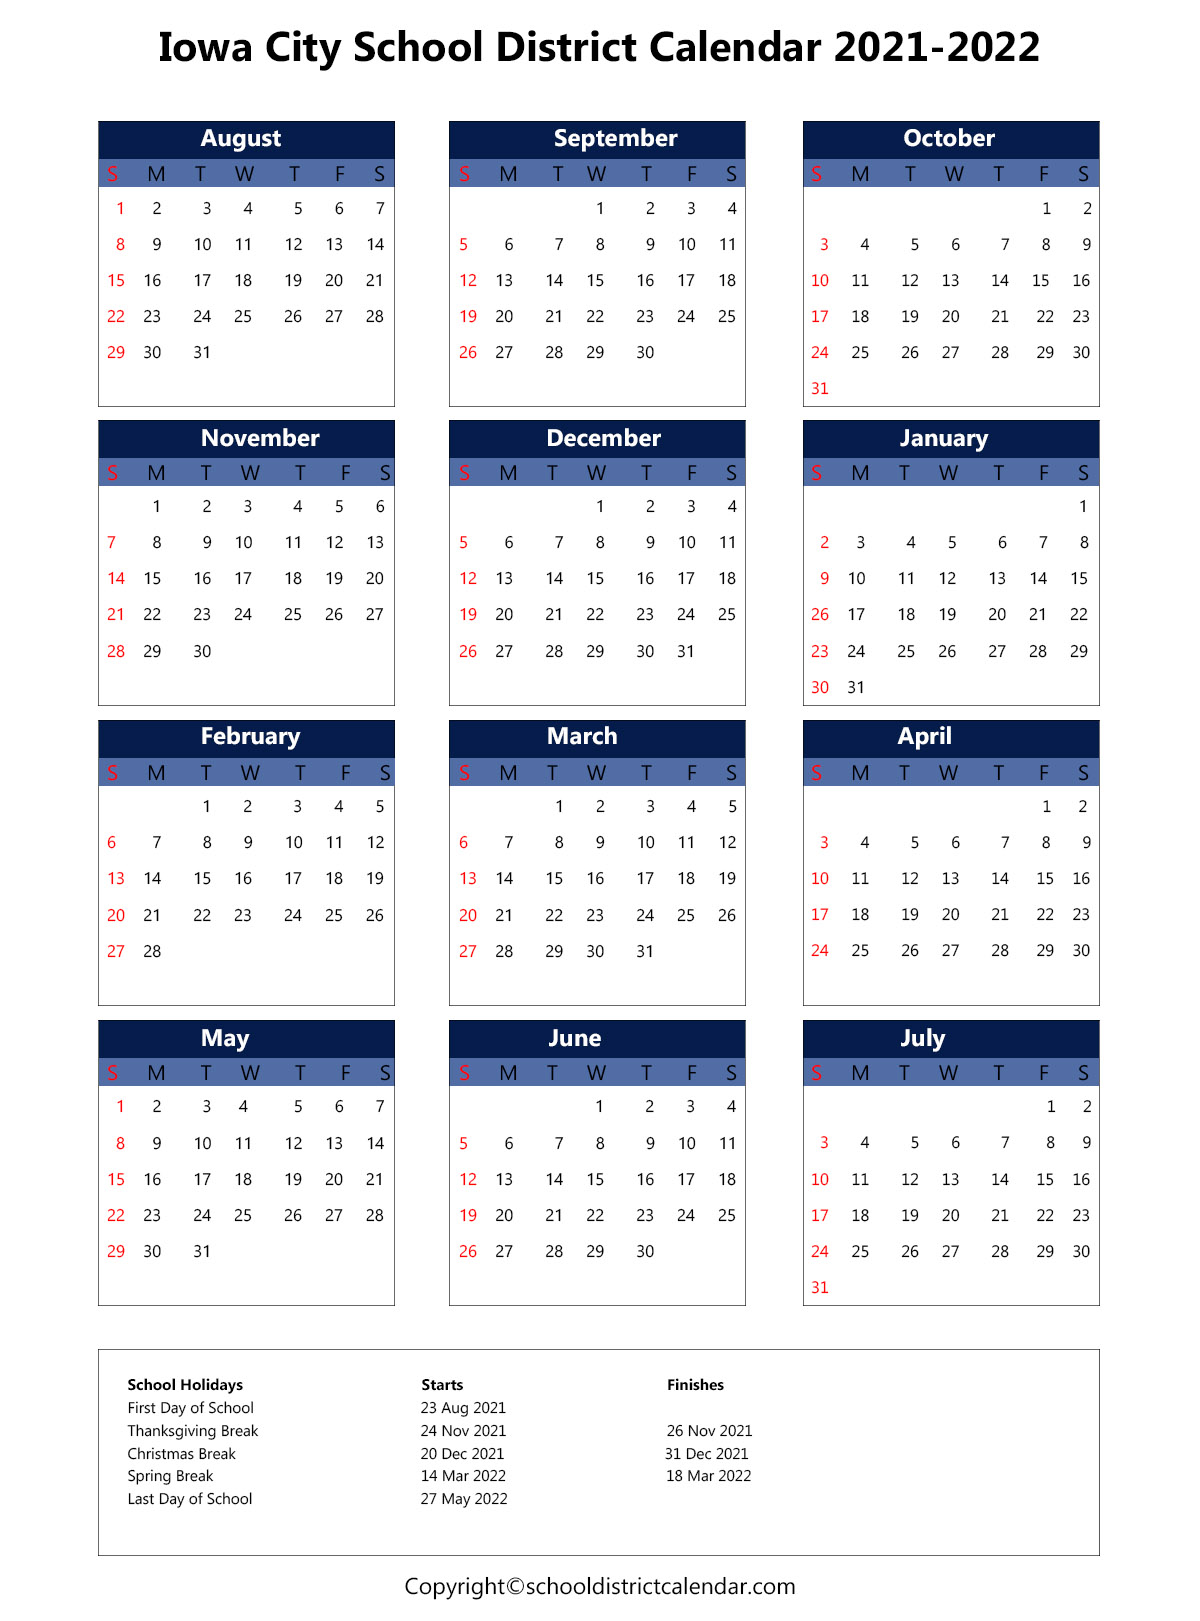 Iowa City School District Calendar 2021